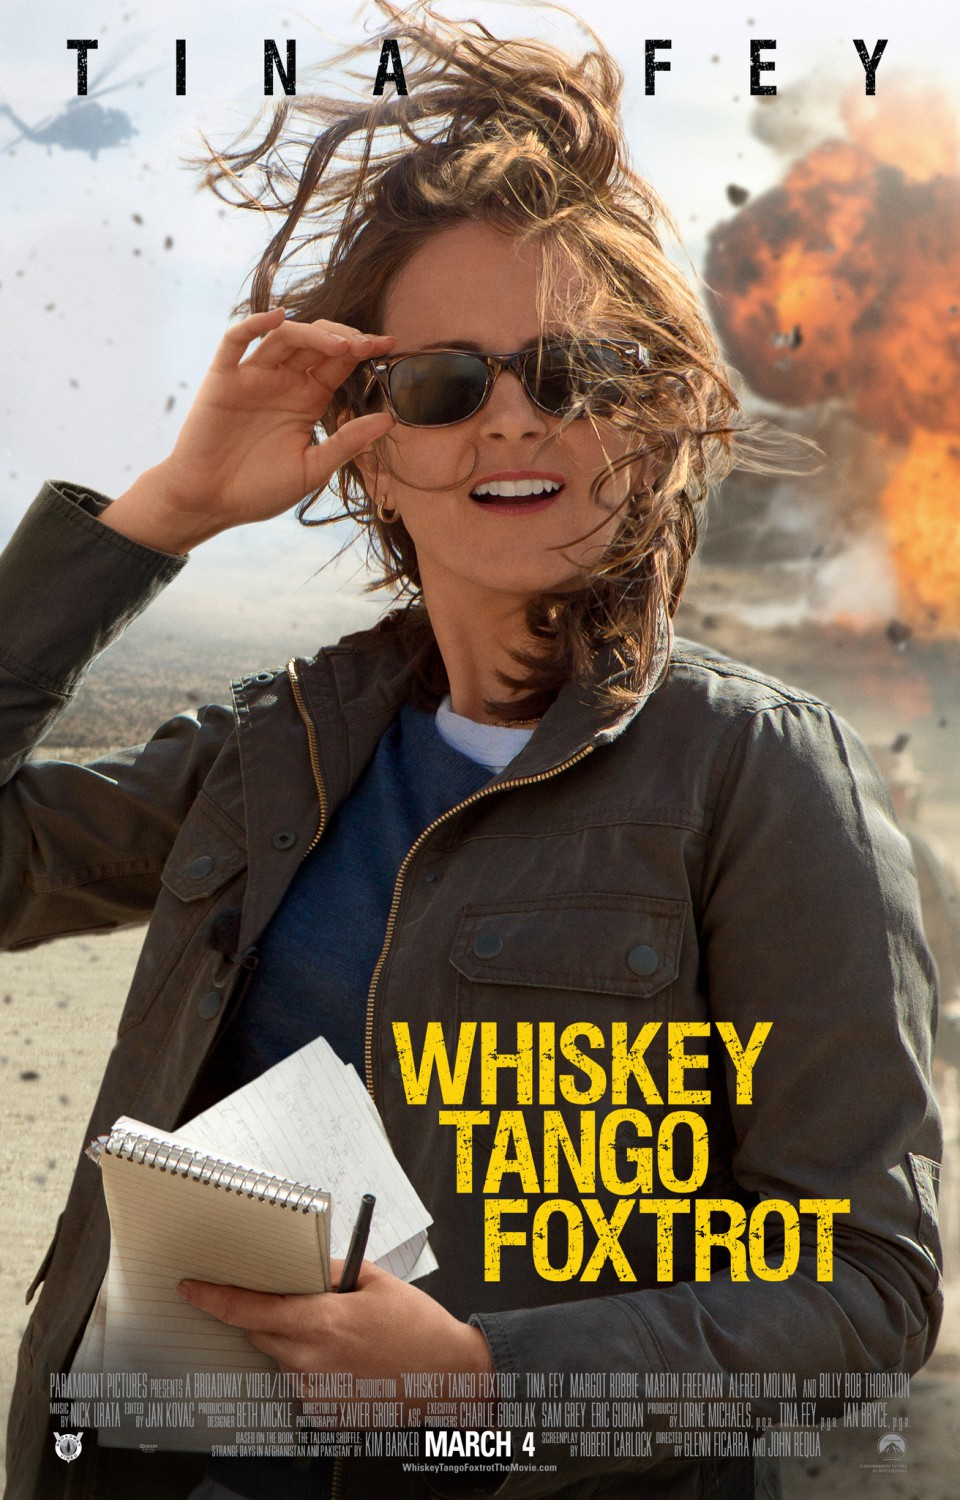 The movie about the journalist who discovered the women were blowing up the well... And  an interview  with the film's screenwriter that discusses that incident.